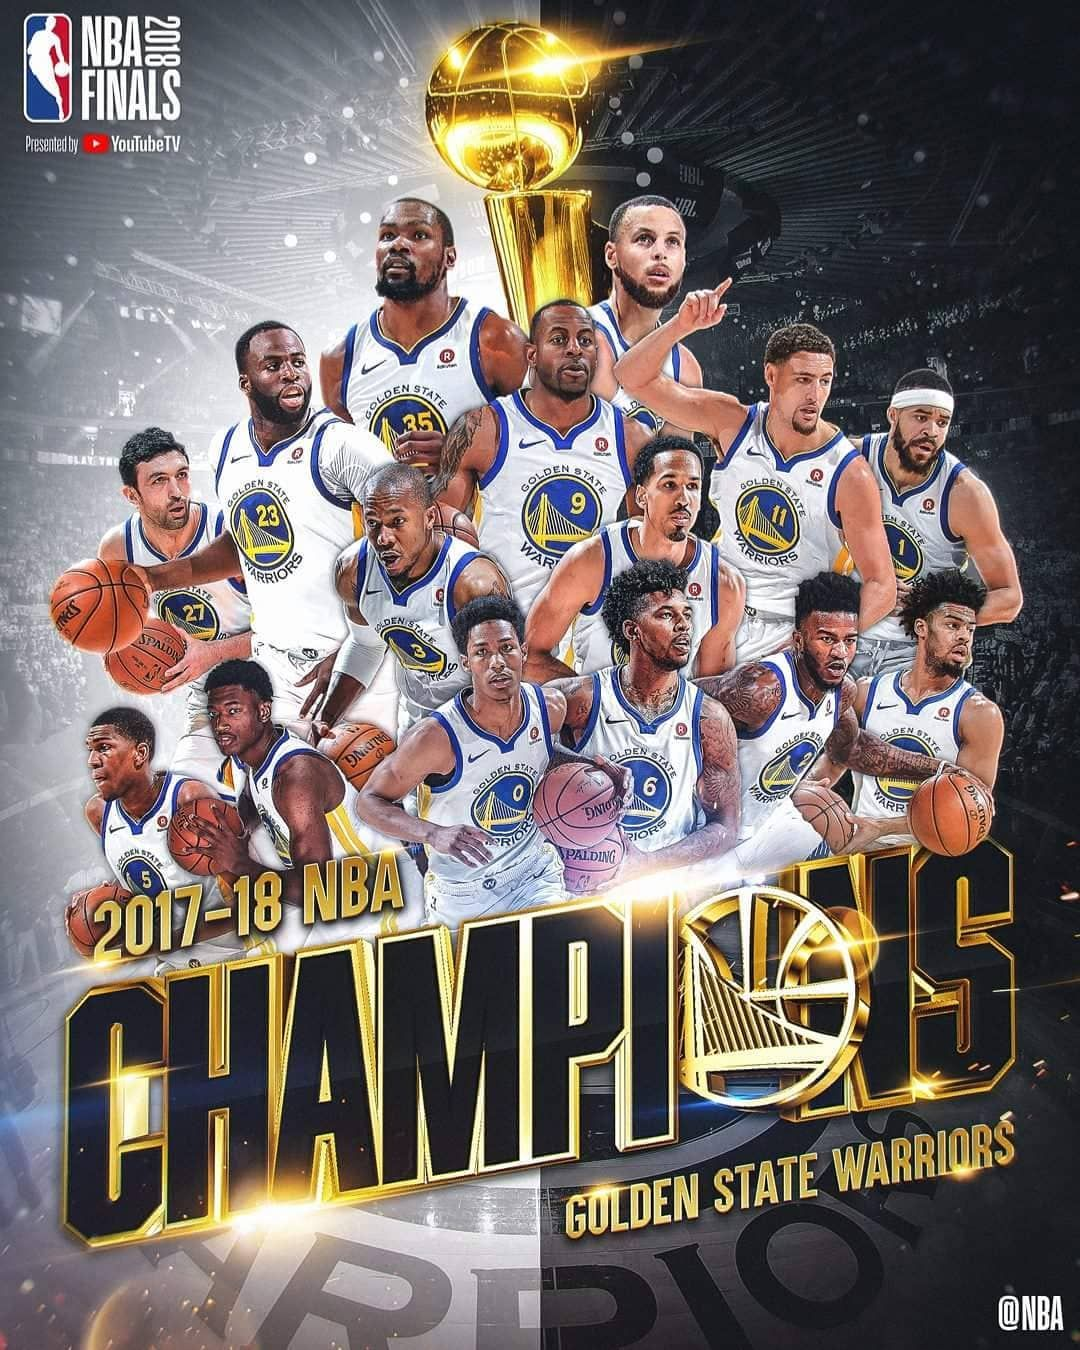 Warriors Come Out And Play Golden State: NBA CHAMPIONS 2018 #nba #nbaplayoffs #champions #2018